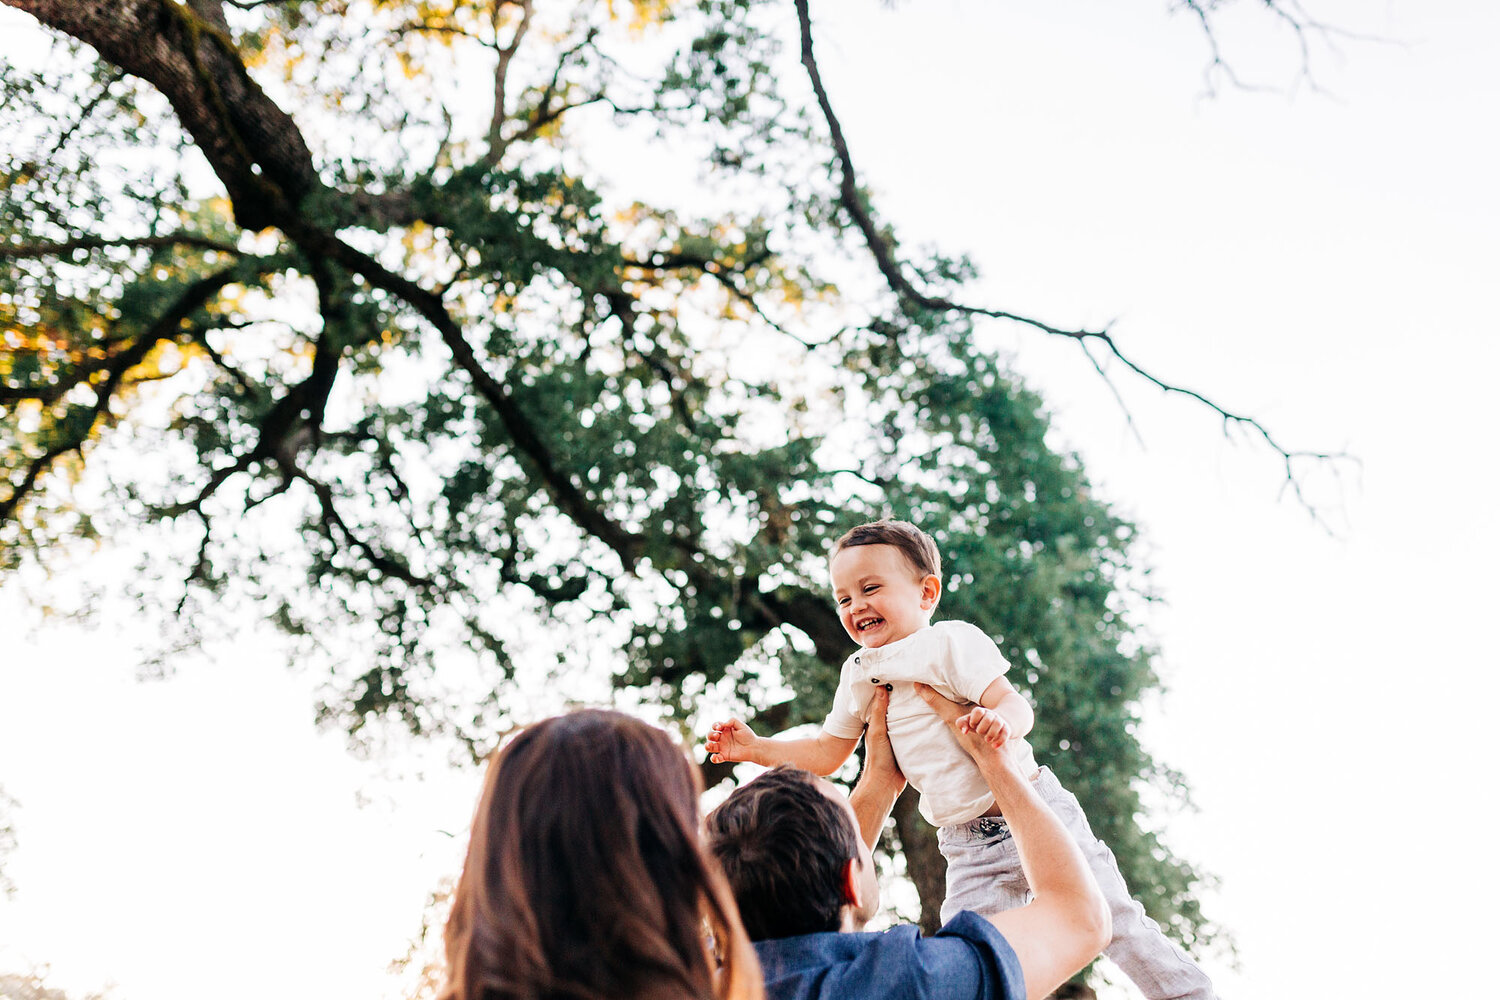 A fun and joyful moment is captured with family photographer Amy Wright, who is based out of Roseville, Rocklin, and Sacramento, California.